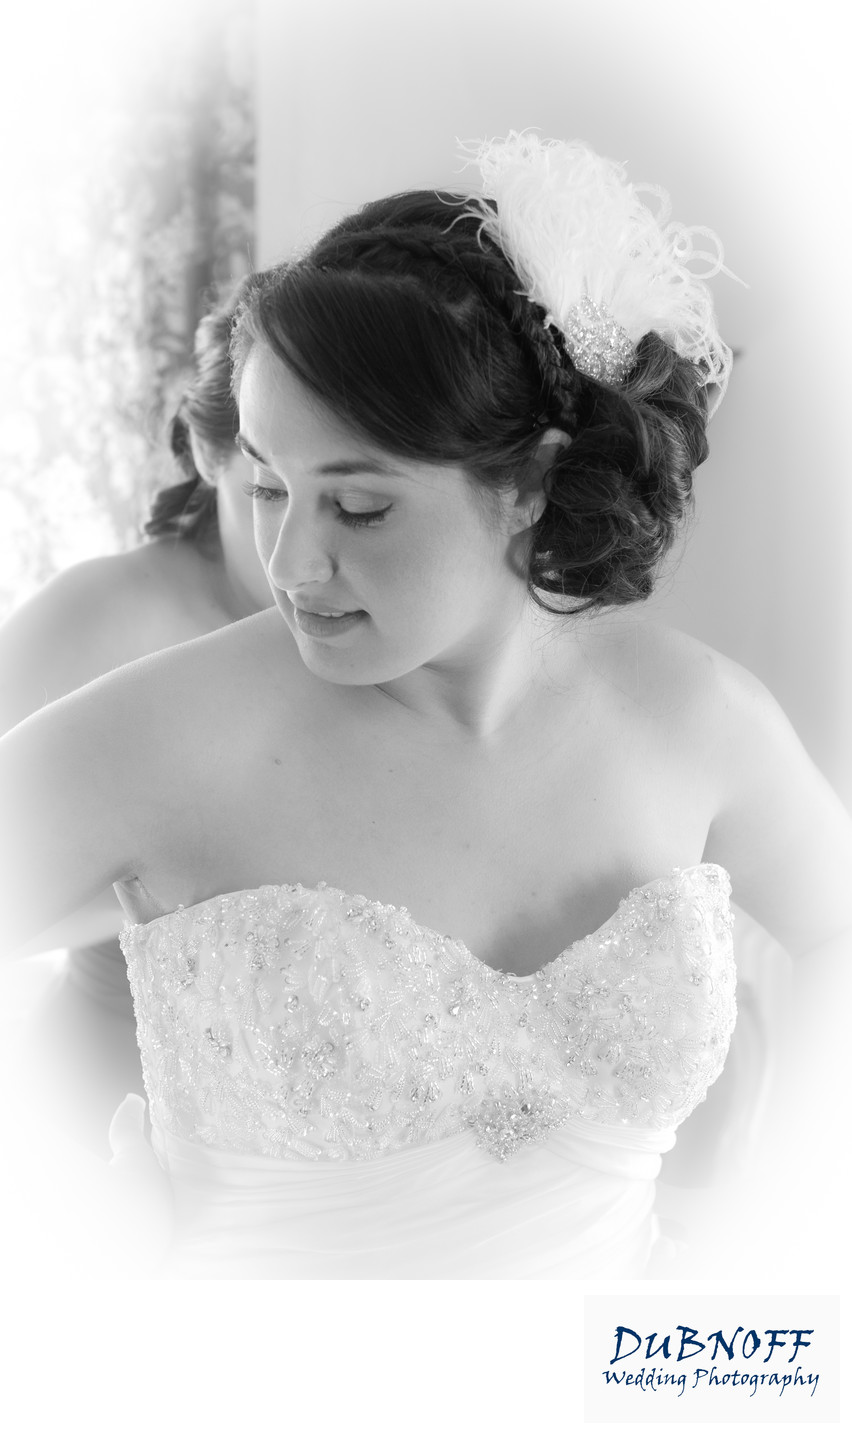 Wedding Photography of Bride Getting Ready at the Berkeley City Club